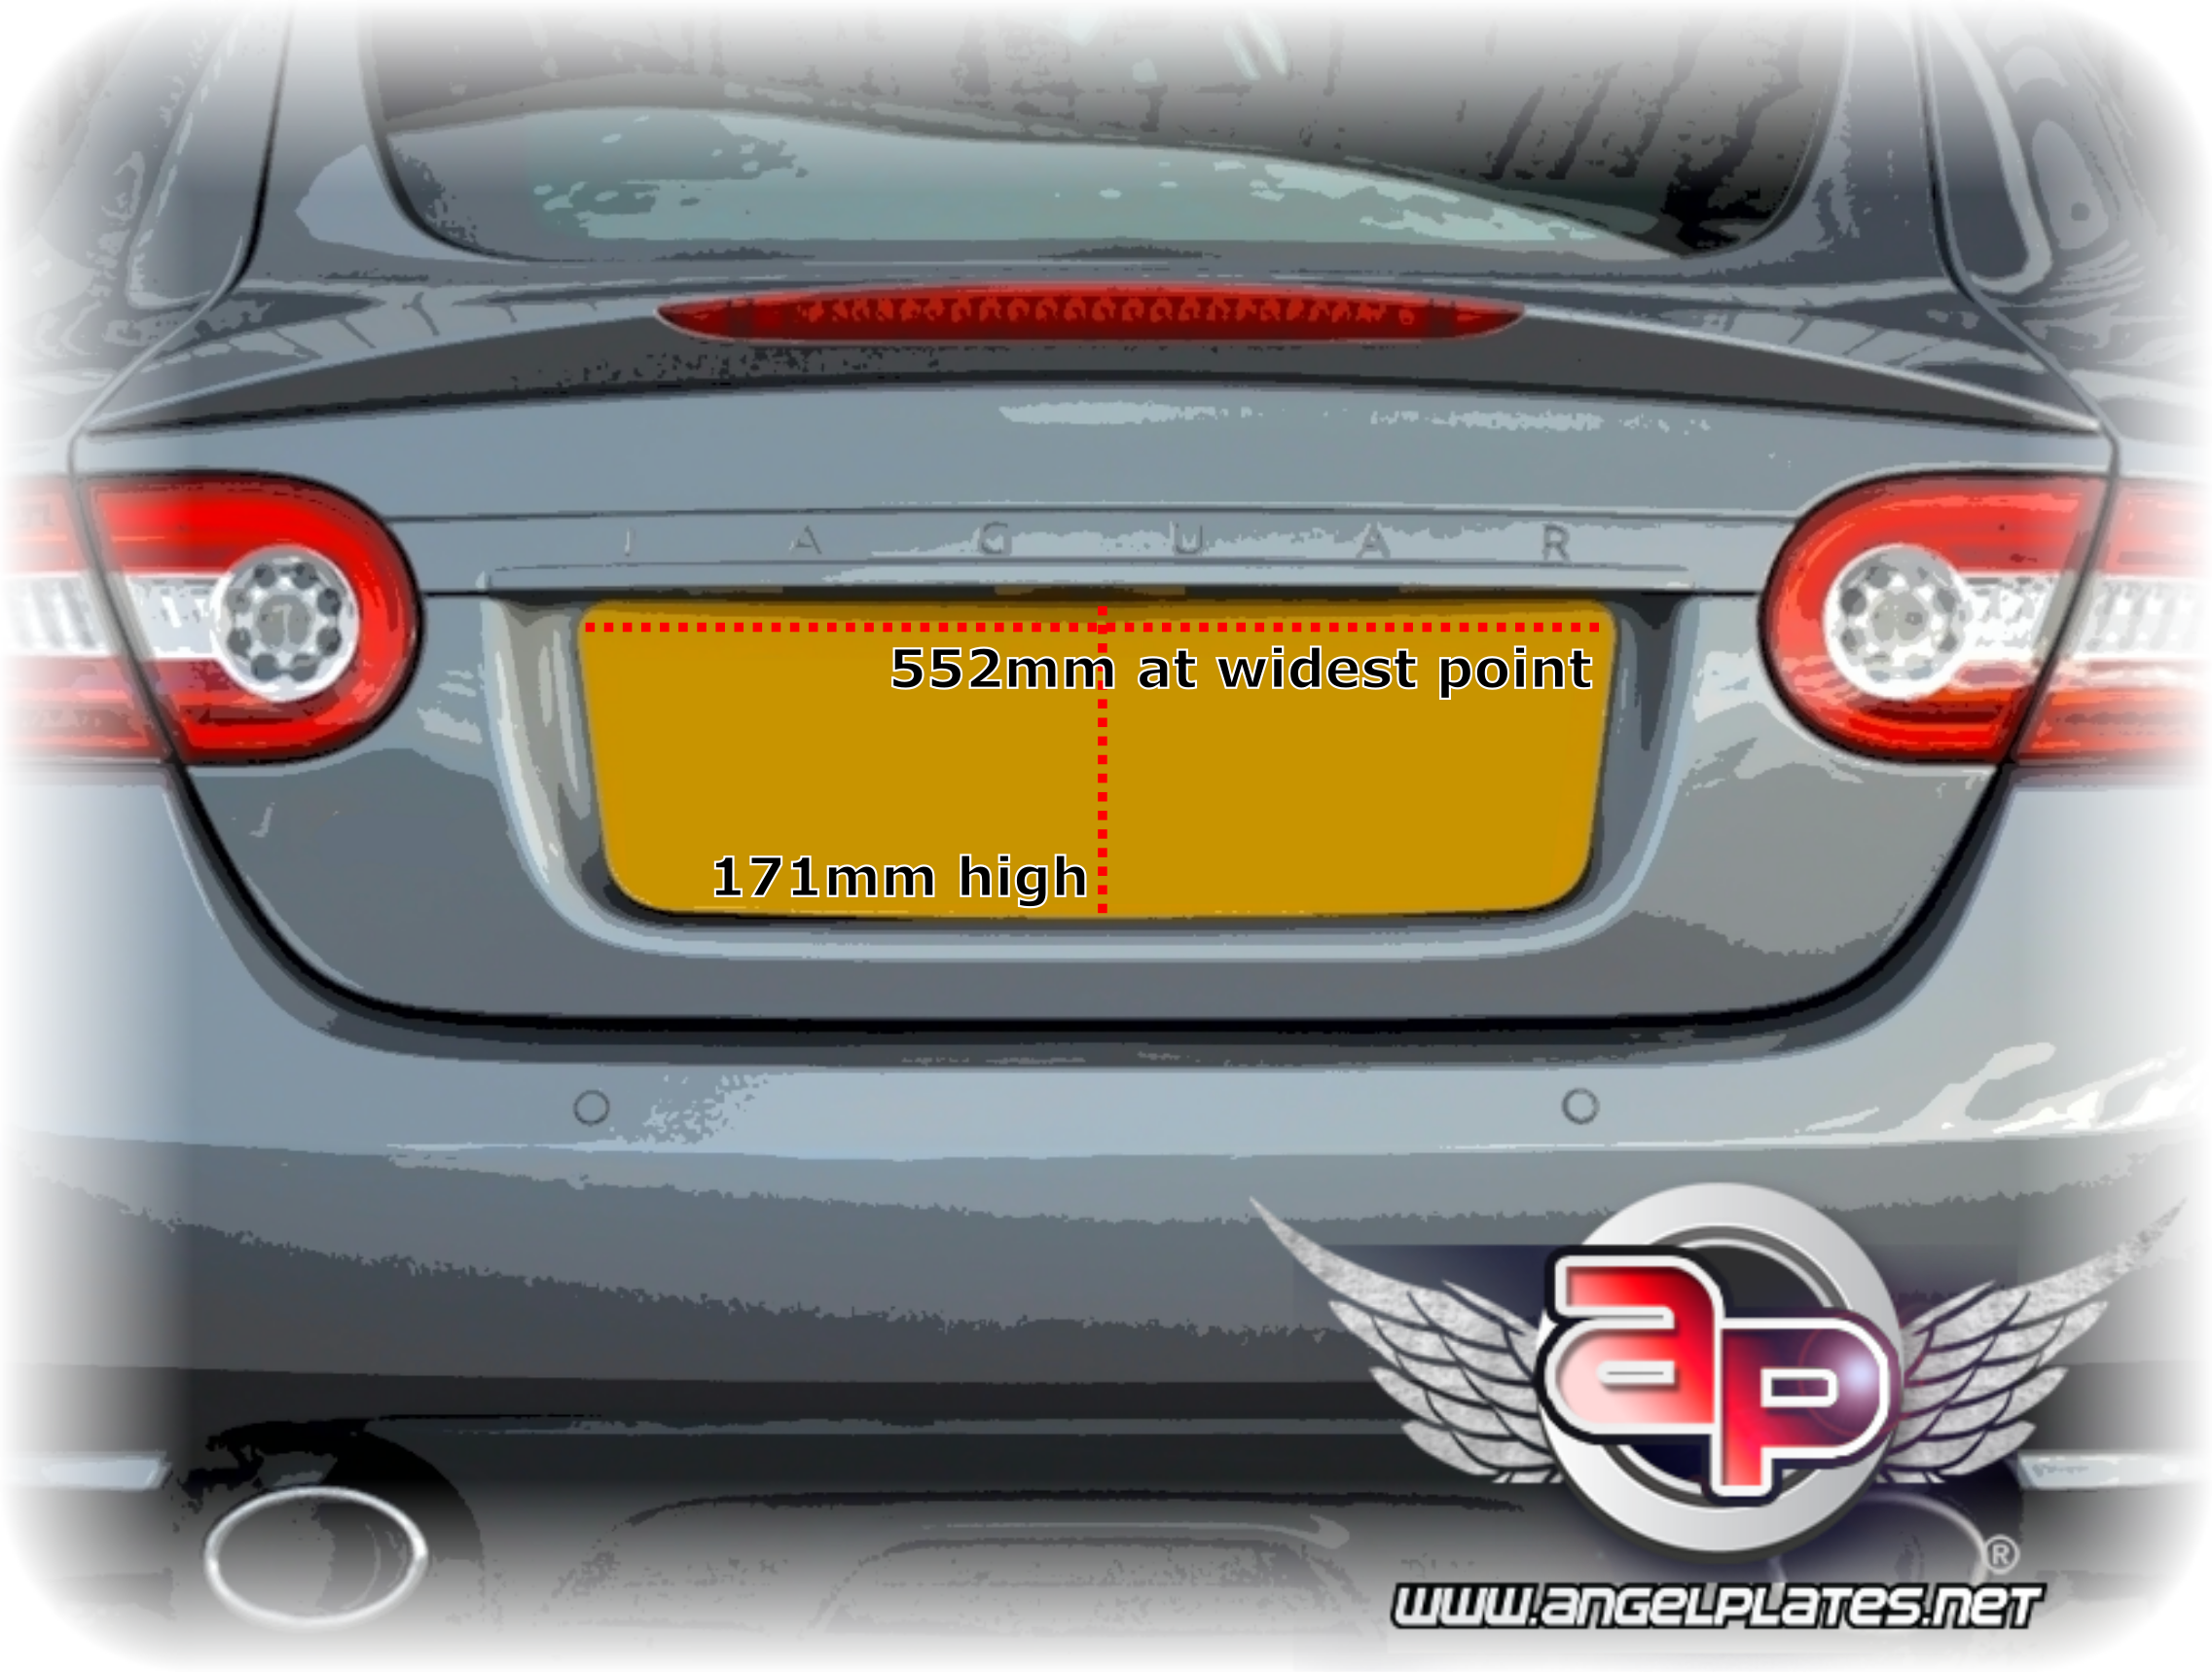 Jaguar XK DB9 Shaped Plate